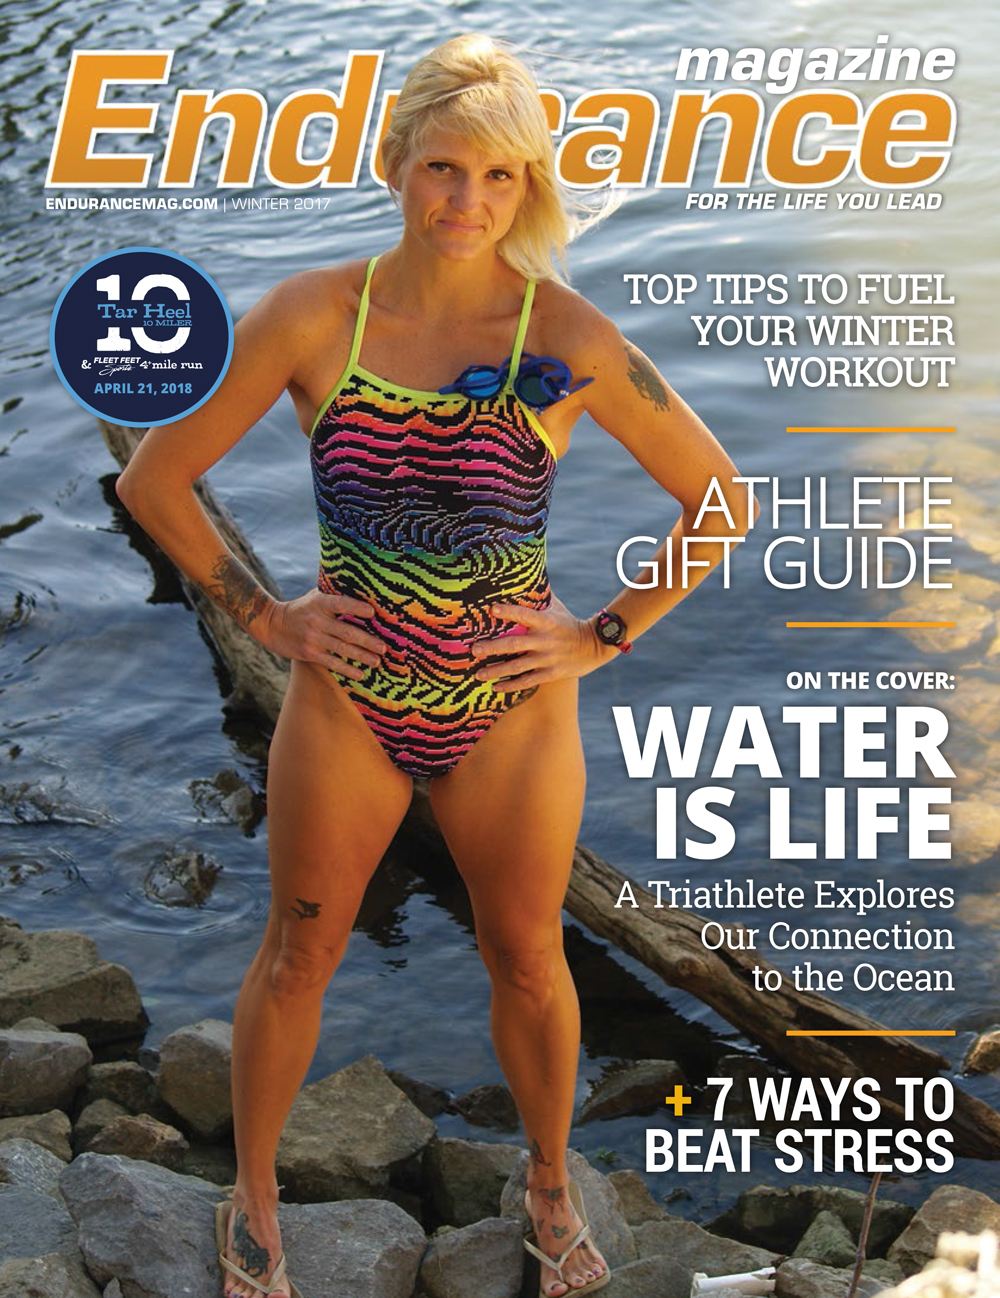 Endurance Magazine Winter 2017